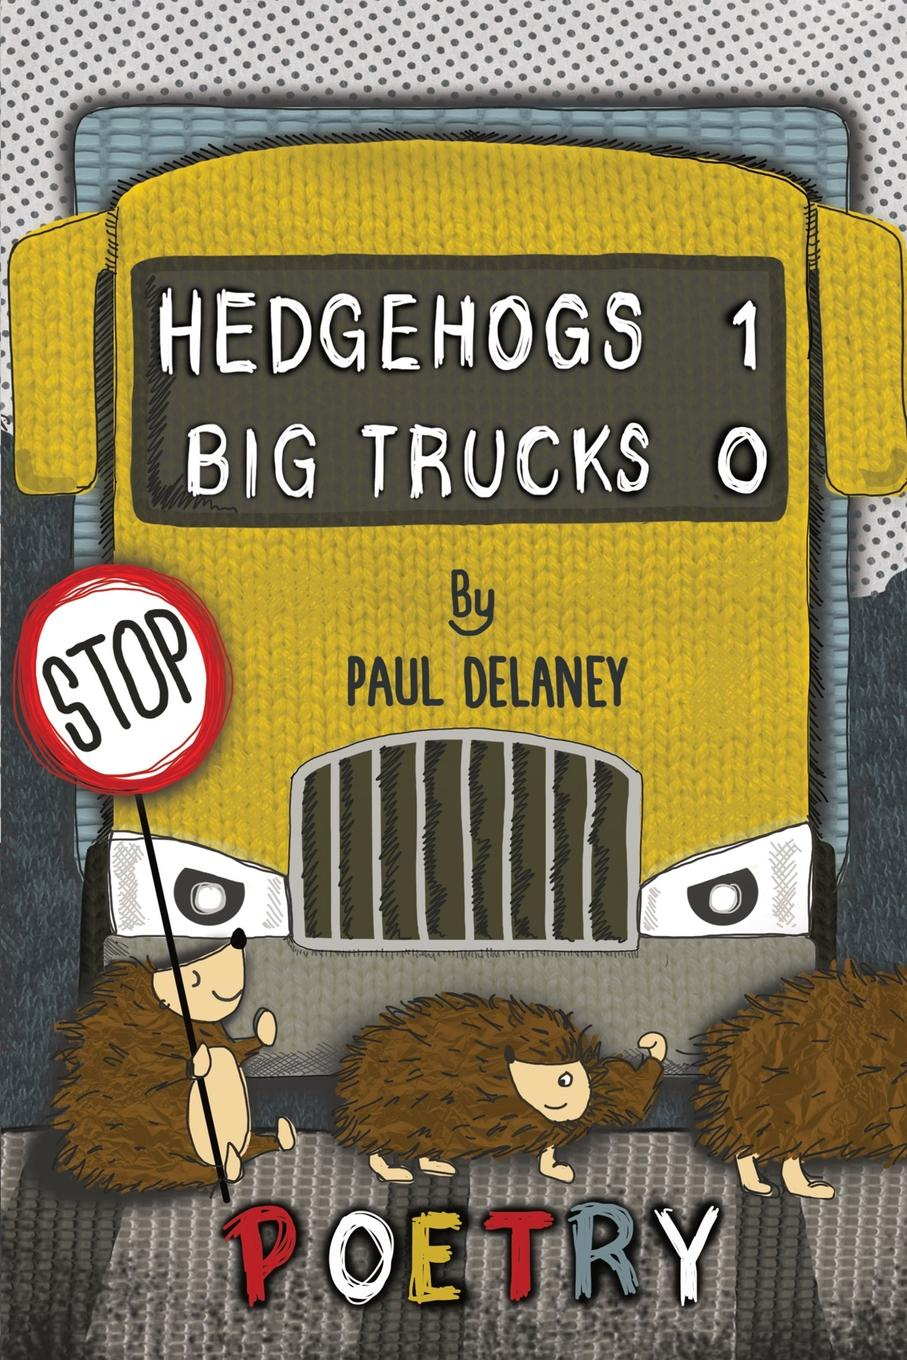 Paul Richard Delaney Hedgehogs 1 Big trucks 0 ms moem modern wedding poems